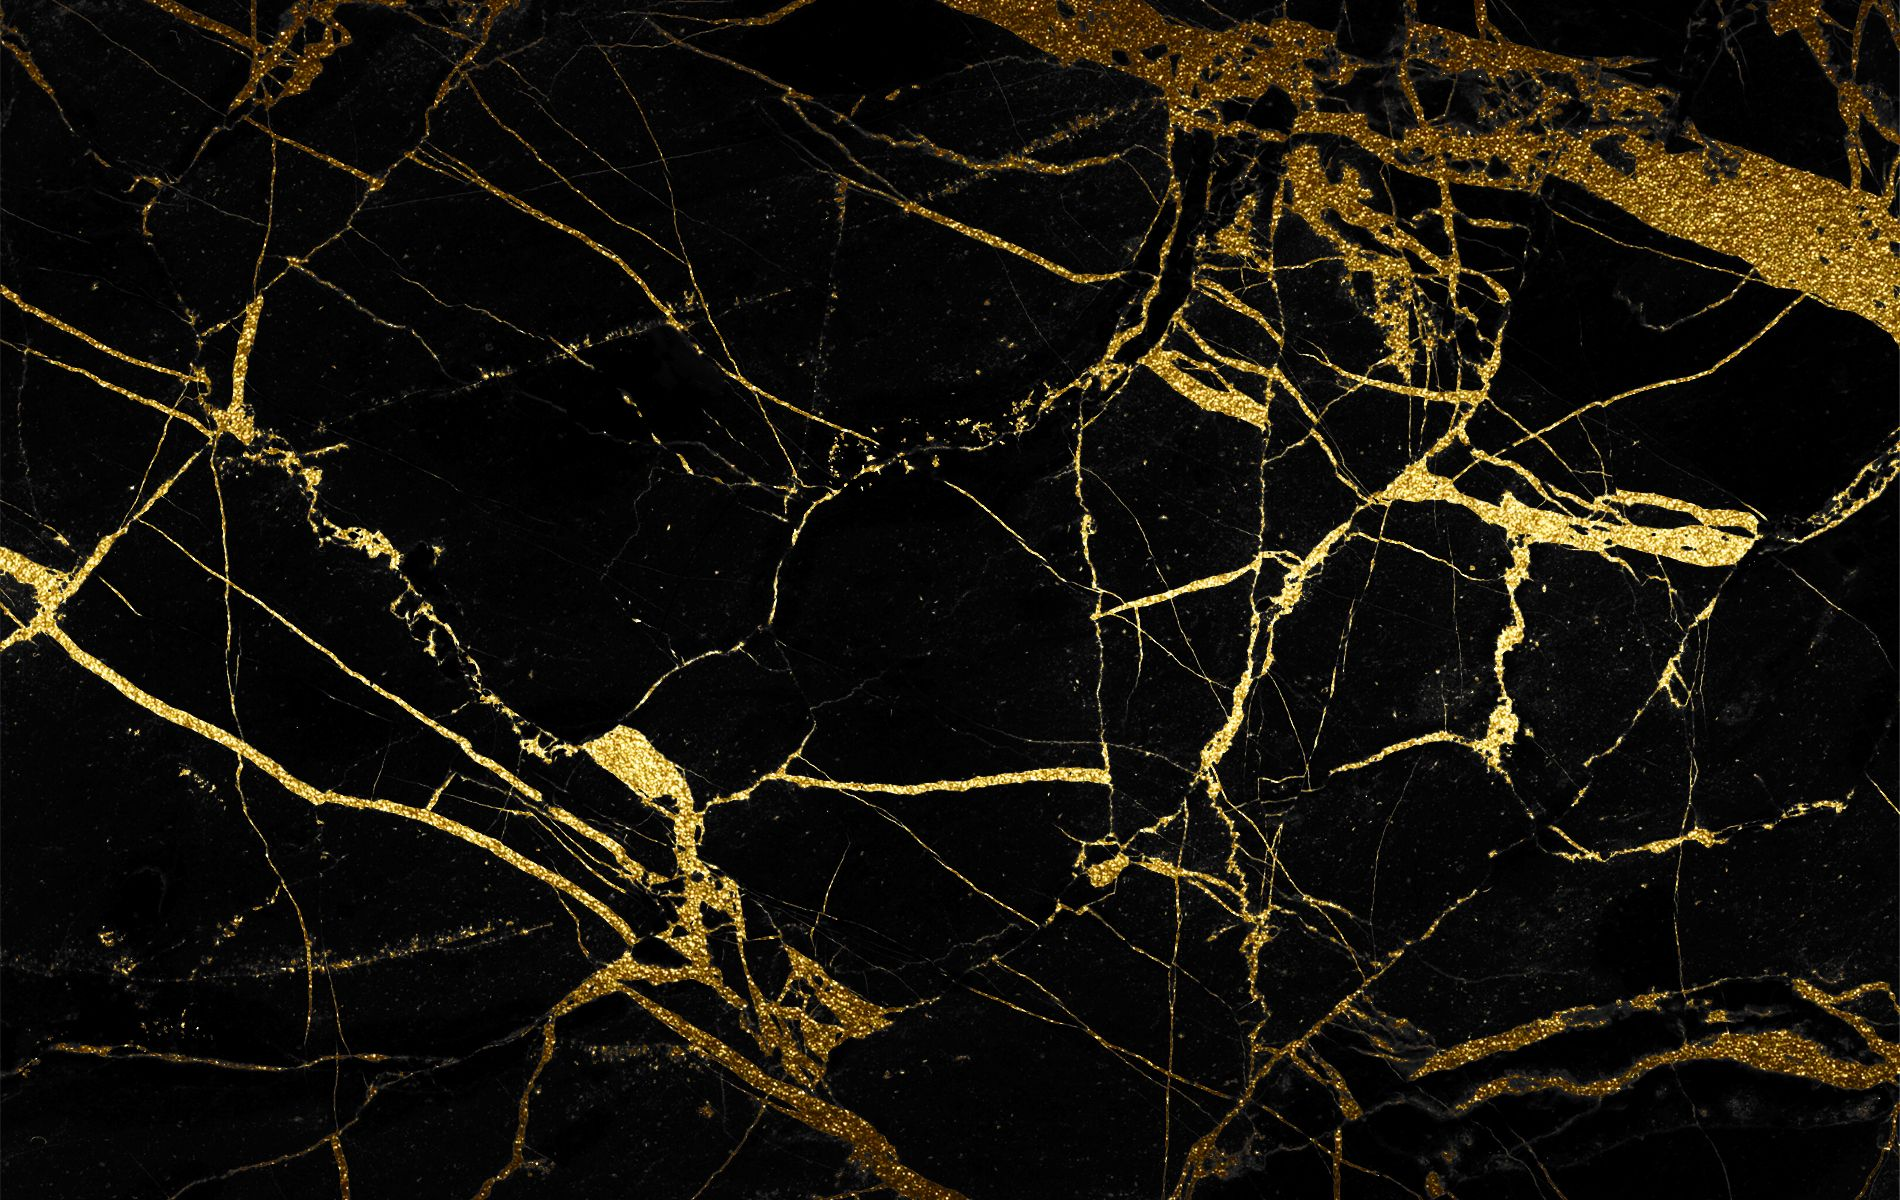 Black and Gold Wallpapers Images Download Cosas que 1900x1200